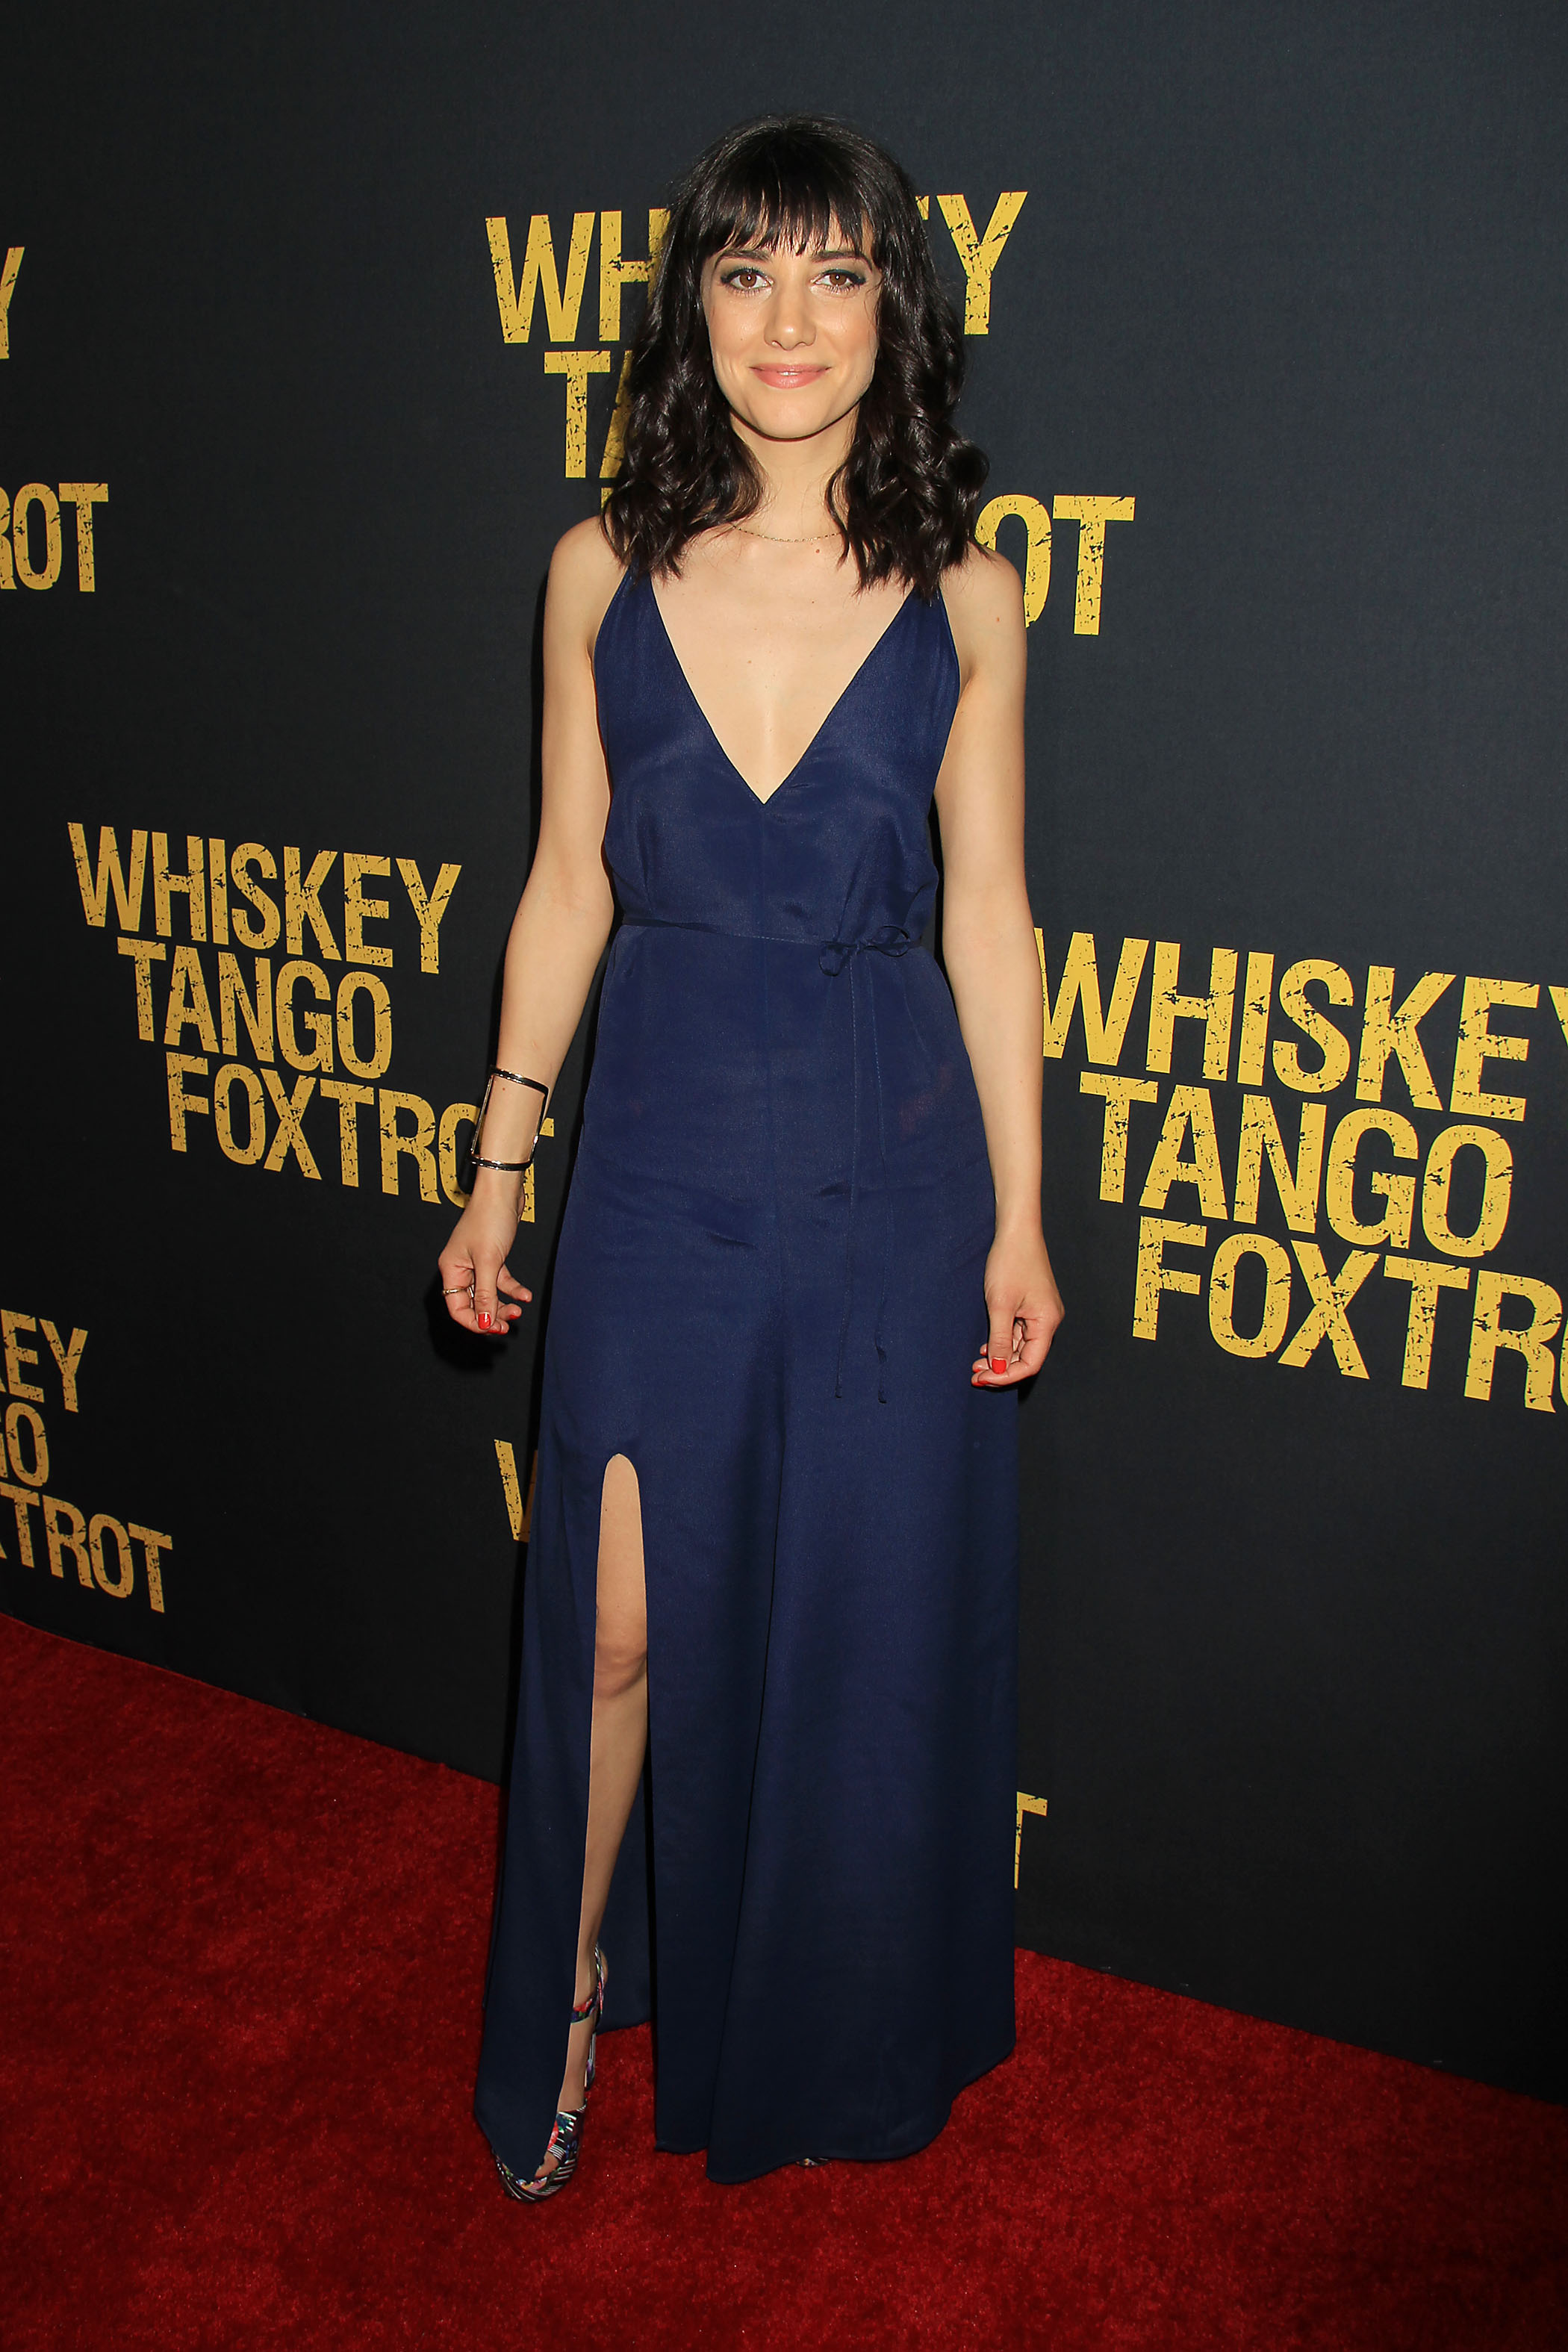 "New York, NY - 3/1/16 - Sheila Vand attends the Paramount Pictures World Premiere of ""WHISKEY TANGO FOXTROT"". The film stars Tina Fey, Margot Robbie, Martin Freeman, Billy Bob Thornton and Christopher Abbott. It opens in theaters March 4th, 2016. PHOTO by: Dave Allocca/Starpix."